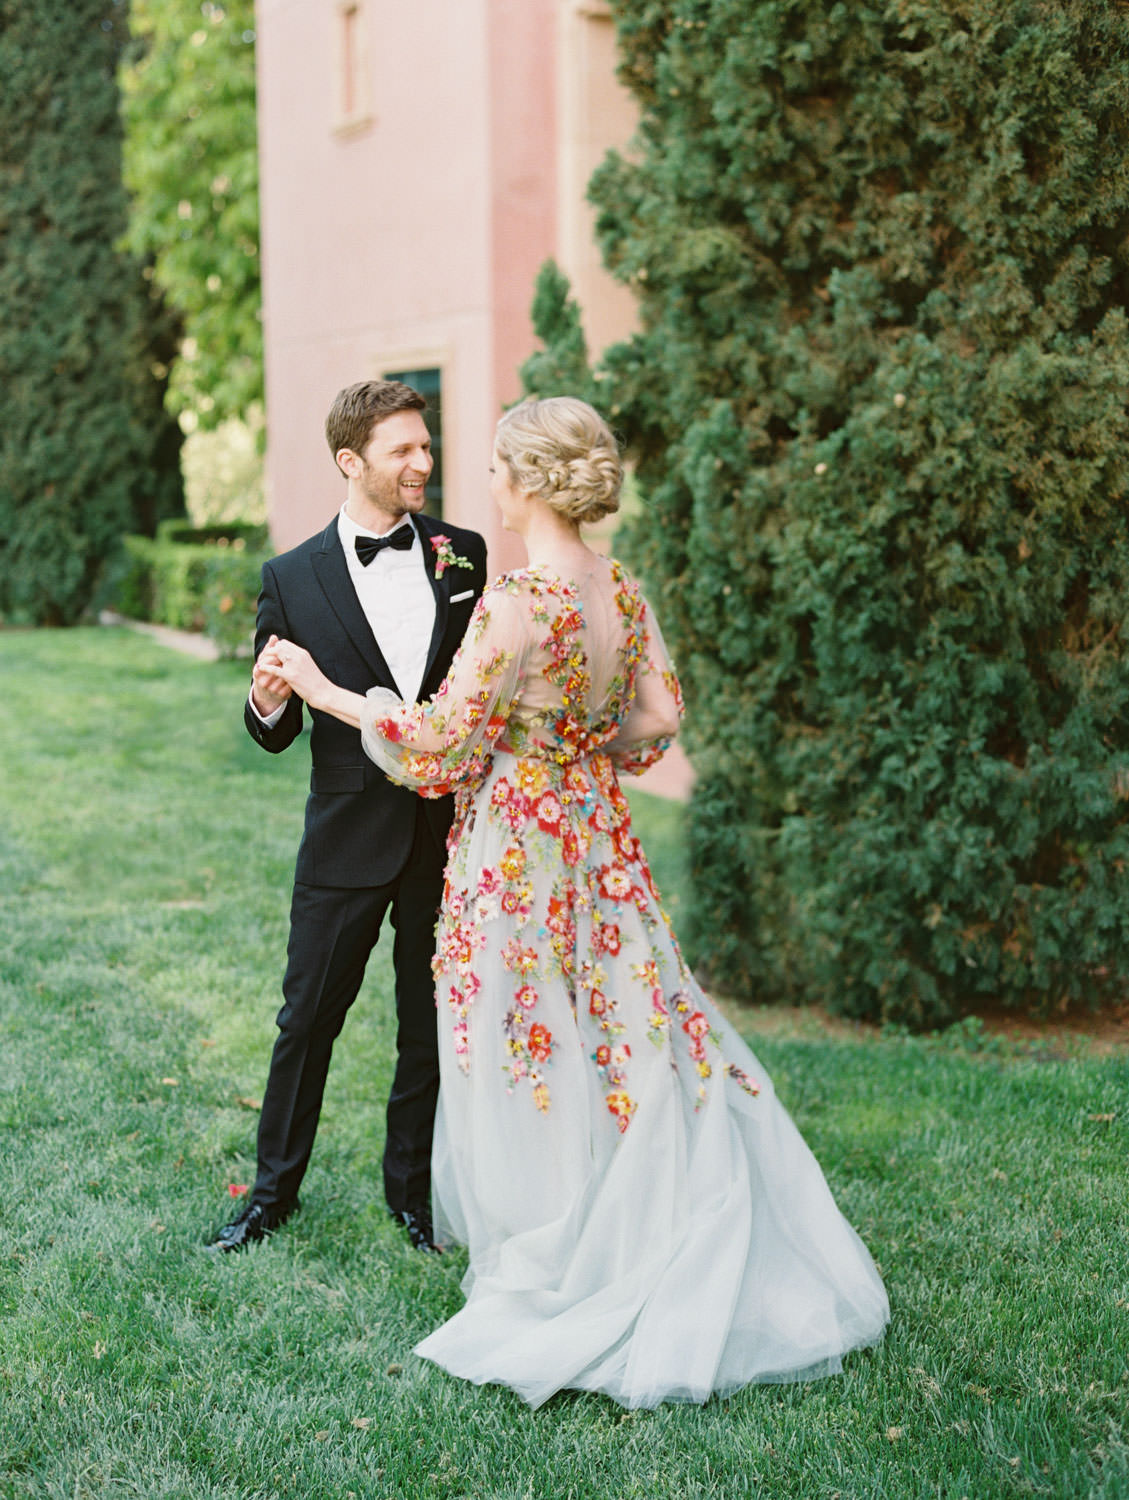 Groom in a black tux smiling during first look at Bride wearing a Marchesa blue and pink floral long sleeve couture gown with floral appliques. Fairmont Grand del Mar wedding published on Martha Stewart Weddings